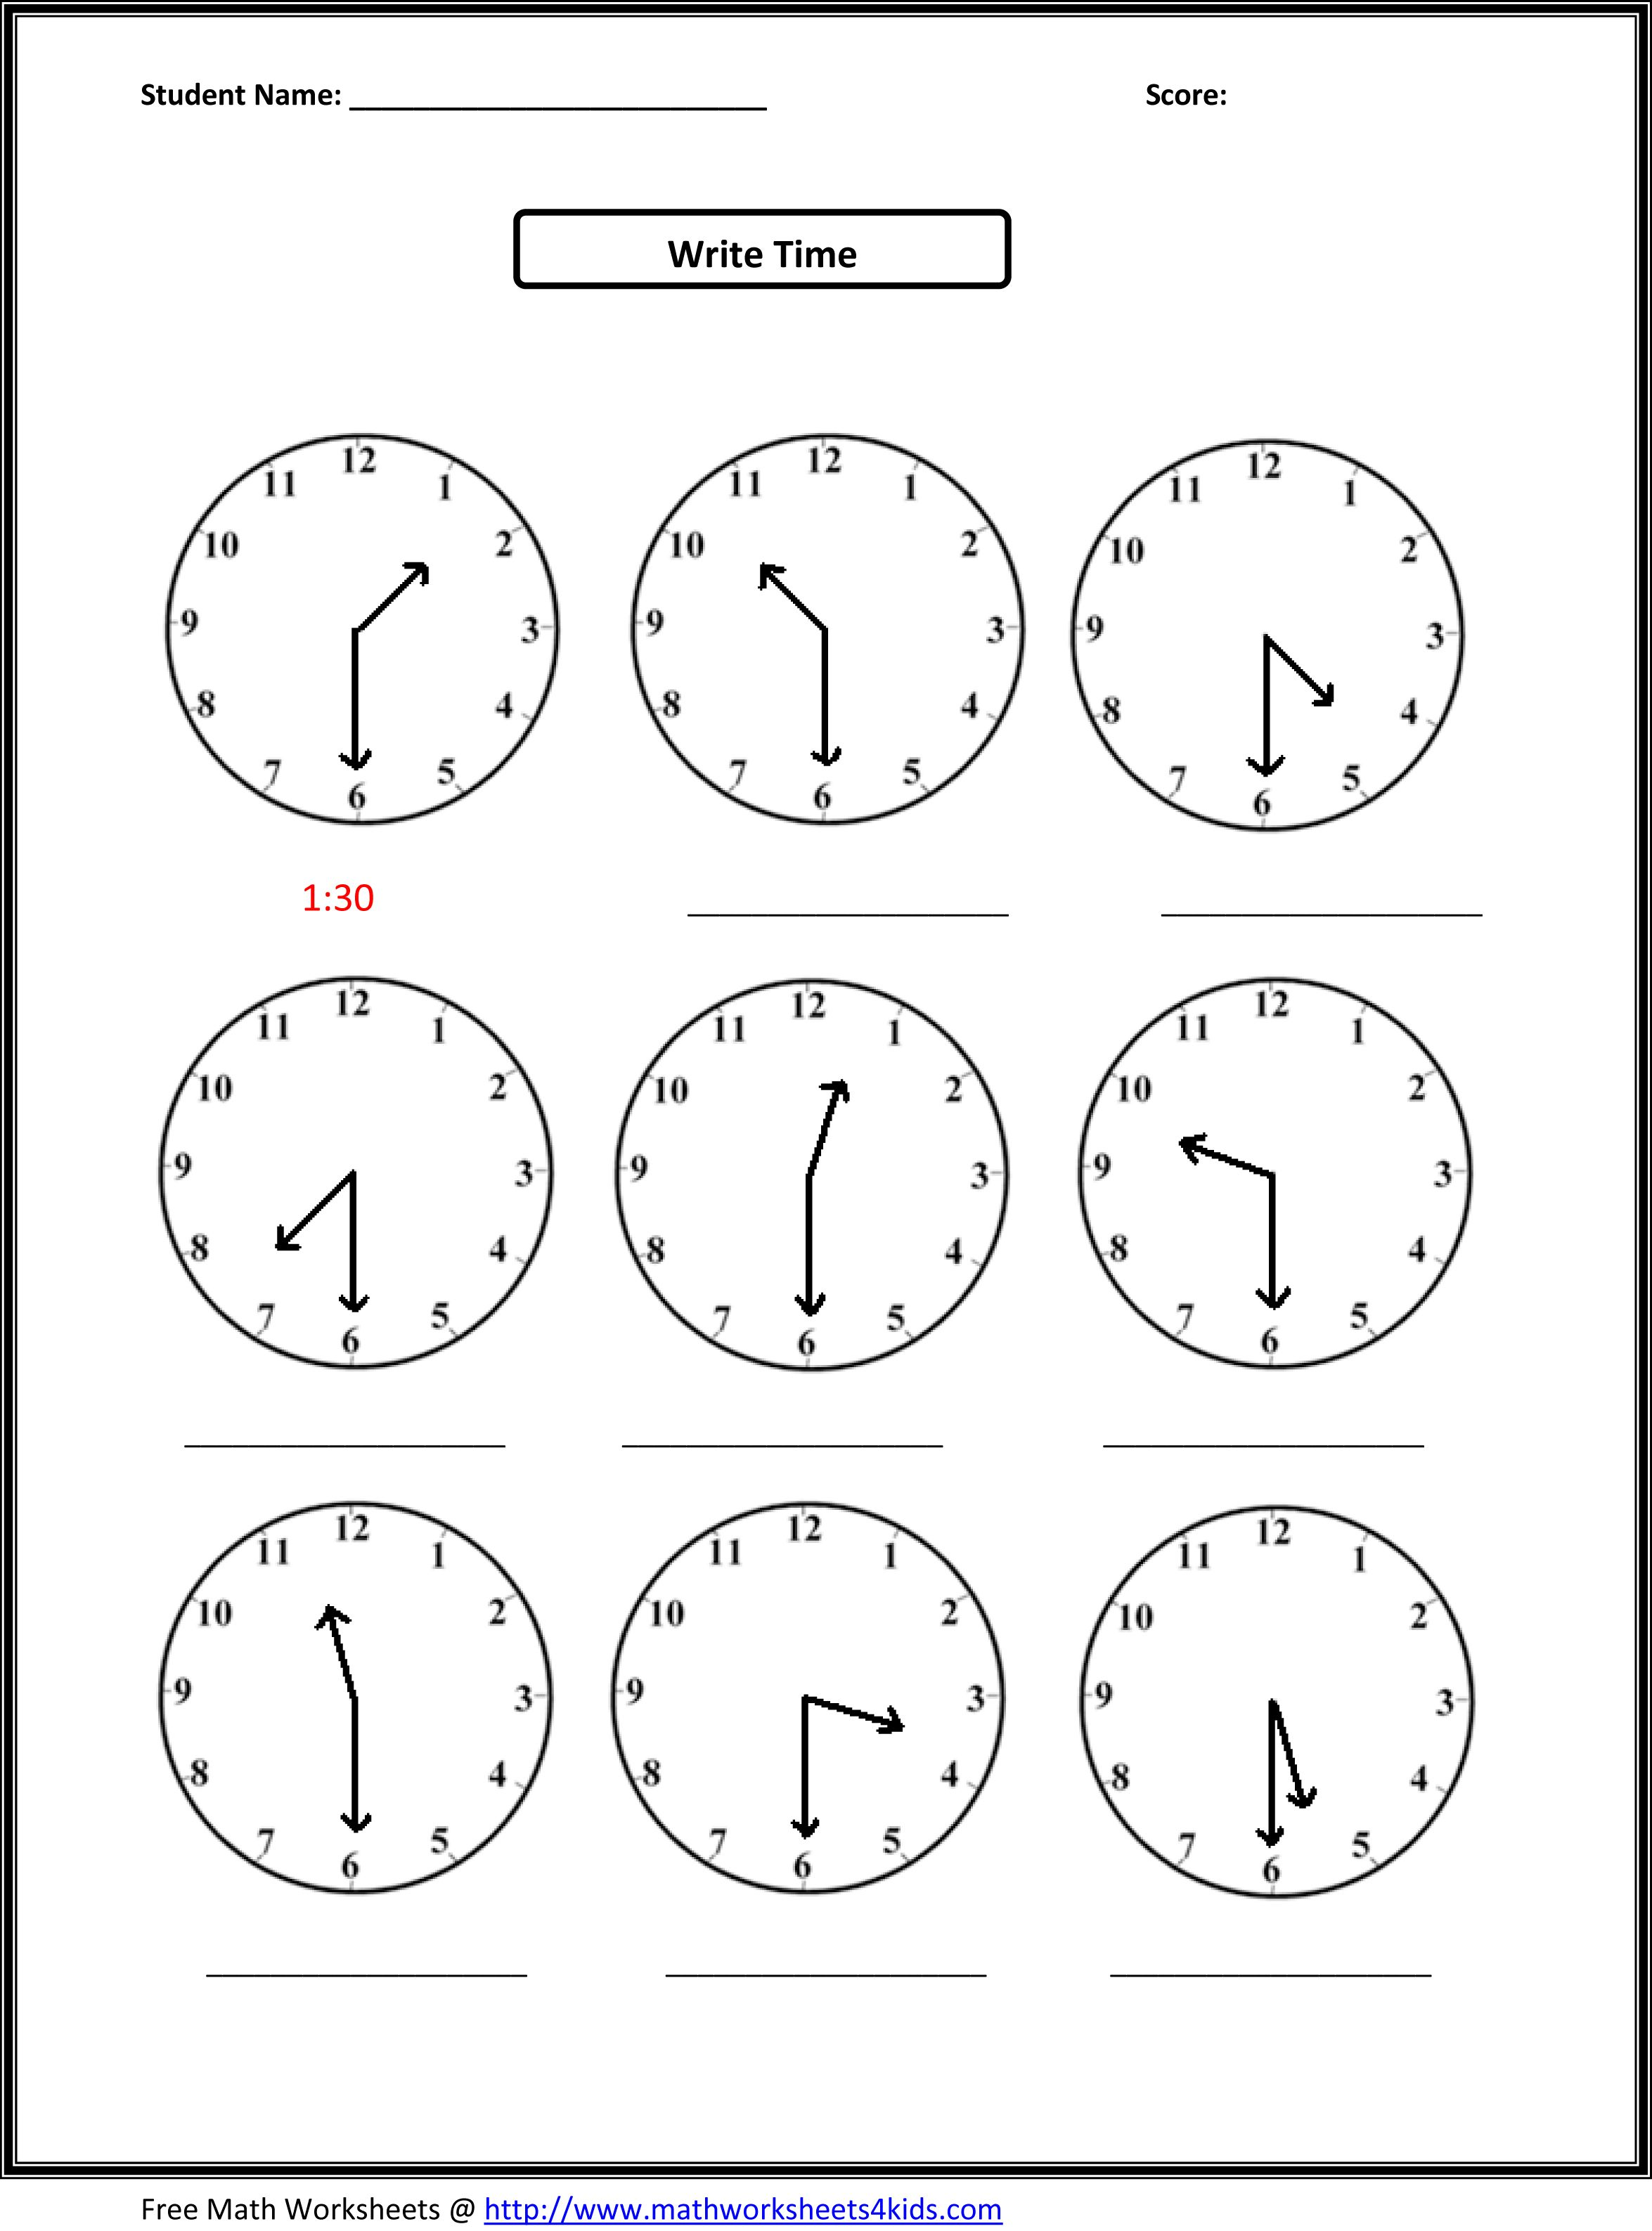 Proatmealus  Pleasant Worksheet On Time For Grade   Reocurent With Magnificent Free Printable Telling Time Worksheets Nd Grade  Reocurent With Easy On The Eye Salary Worksheet Excel Also Science Graphing Worksheets In Addition Types Of Plate Boundaries Worksheet And Letter Z Worksheet As Well As Plate Tectonics Worksheets For Kids Additionally Thesaurus Exercise Worksheets From Reocurentcom With Proatmealus  Magnificent Worksheet On Time For Grade   Reocurent With Easy On The Eye Free Printable Telling Time Worksheets Nd Grade  Reocurent And Pleasant Salary Worksheet Excel Also Science Graphing Worksheets In Addition Types Of Plate Boundaries Worksheet From Reocurentcom